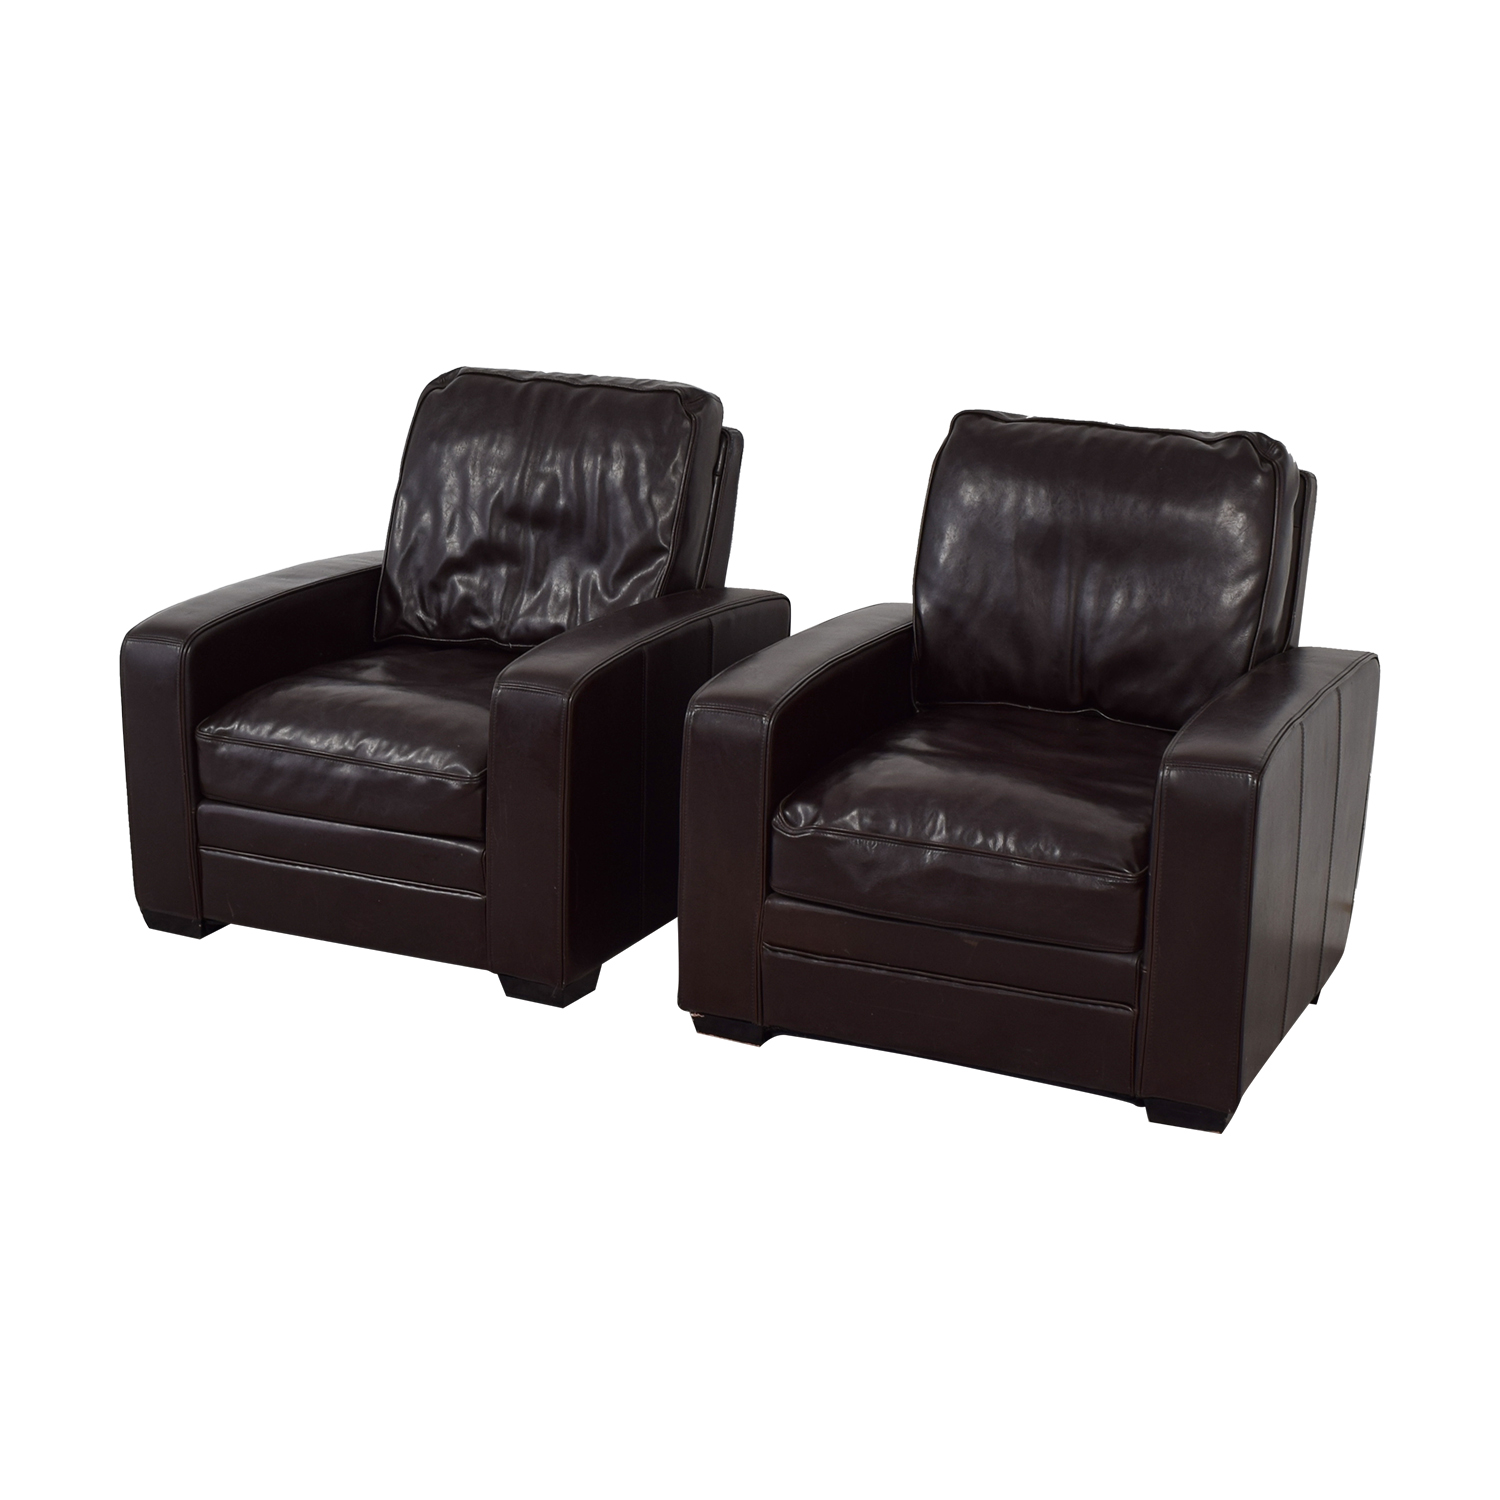 ... Shop Overstock Brown Leather Accent Chairs Overstock ...